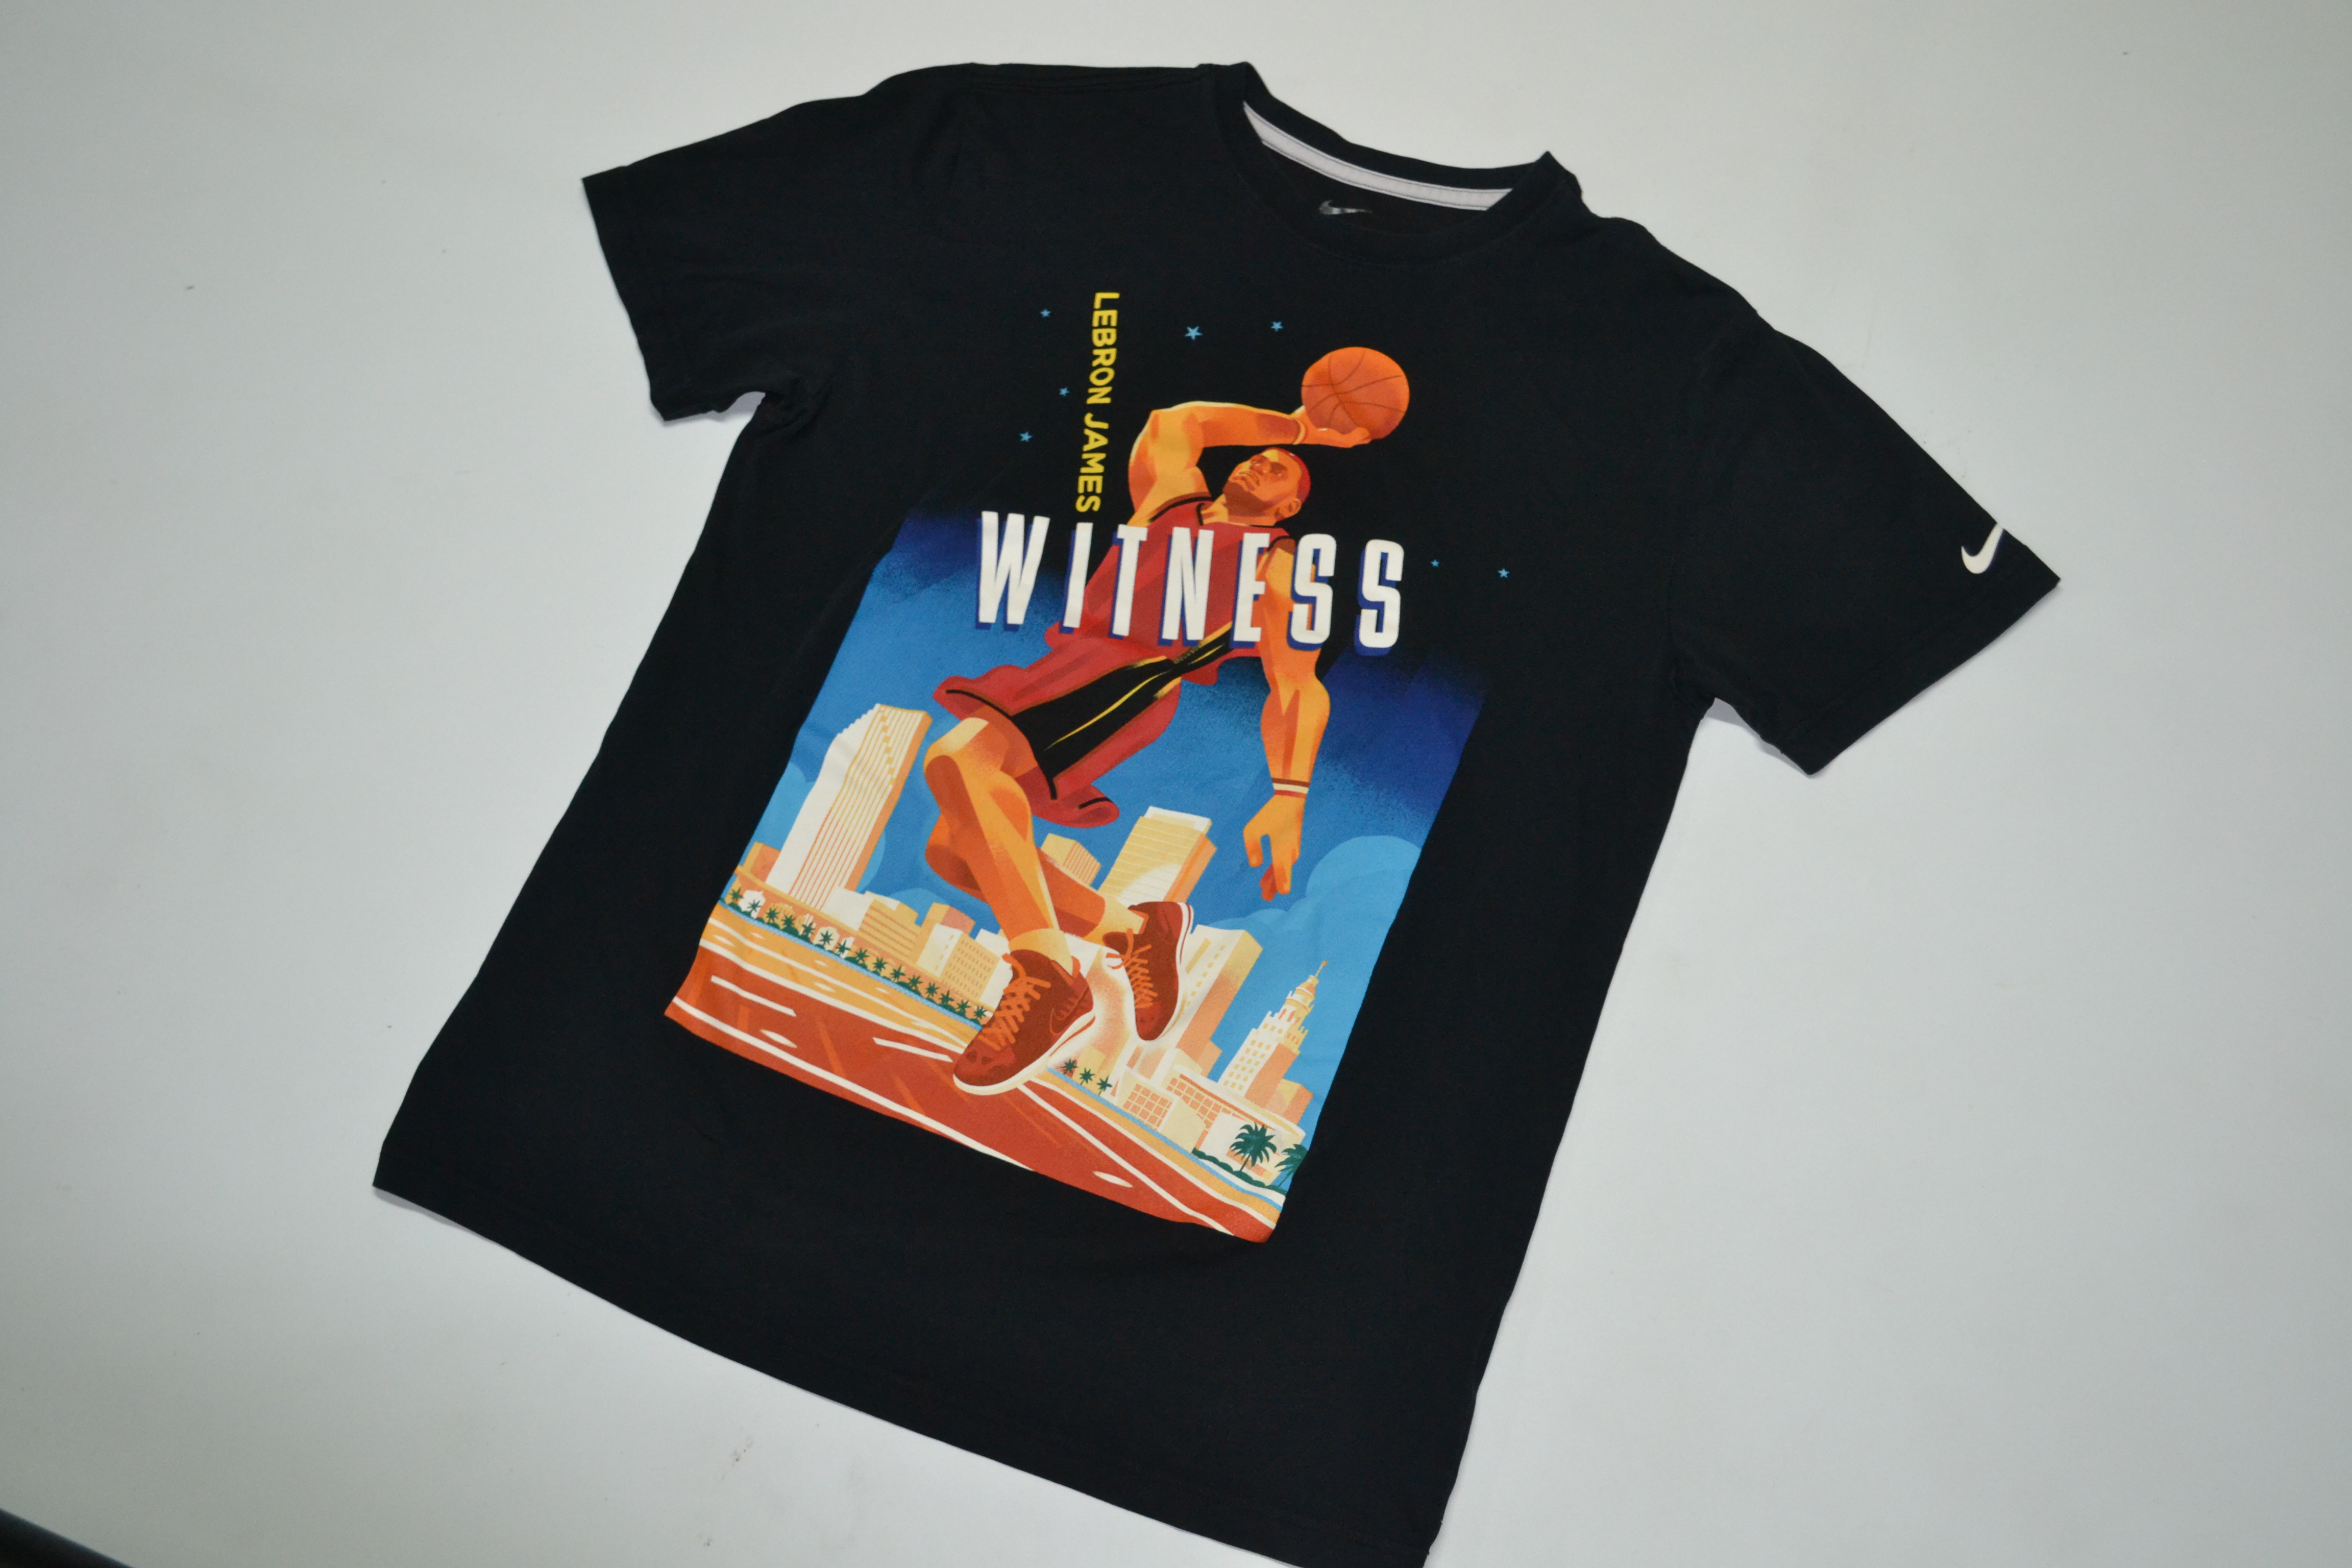 bc1dfef3bed0 Nike Lebron James Witness Greatness Graphic Tee Nike Size Large Lbj ...